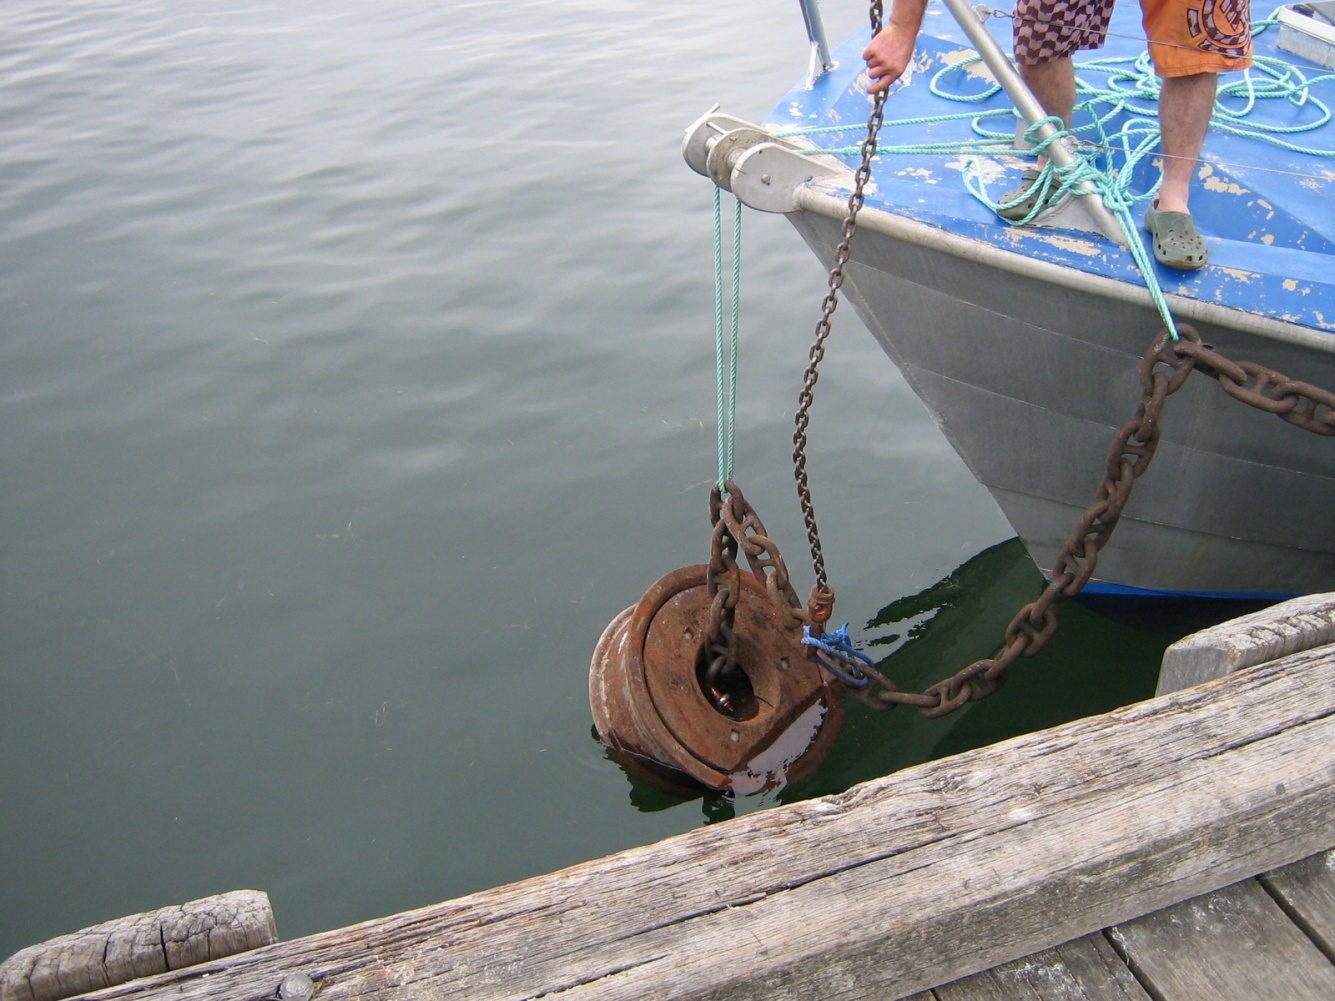 Mooring Buoy Holding-Block Weight ? - Cruisers & Sailing Forums